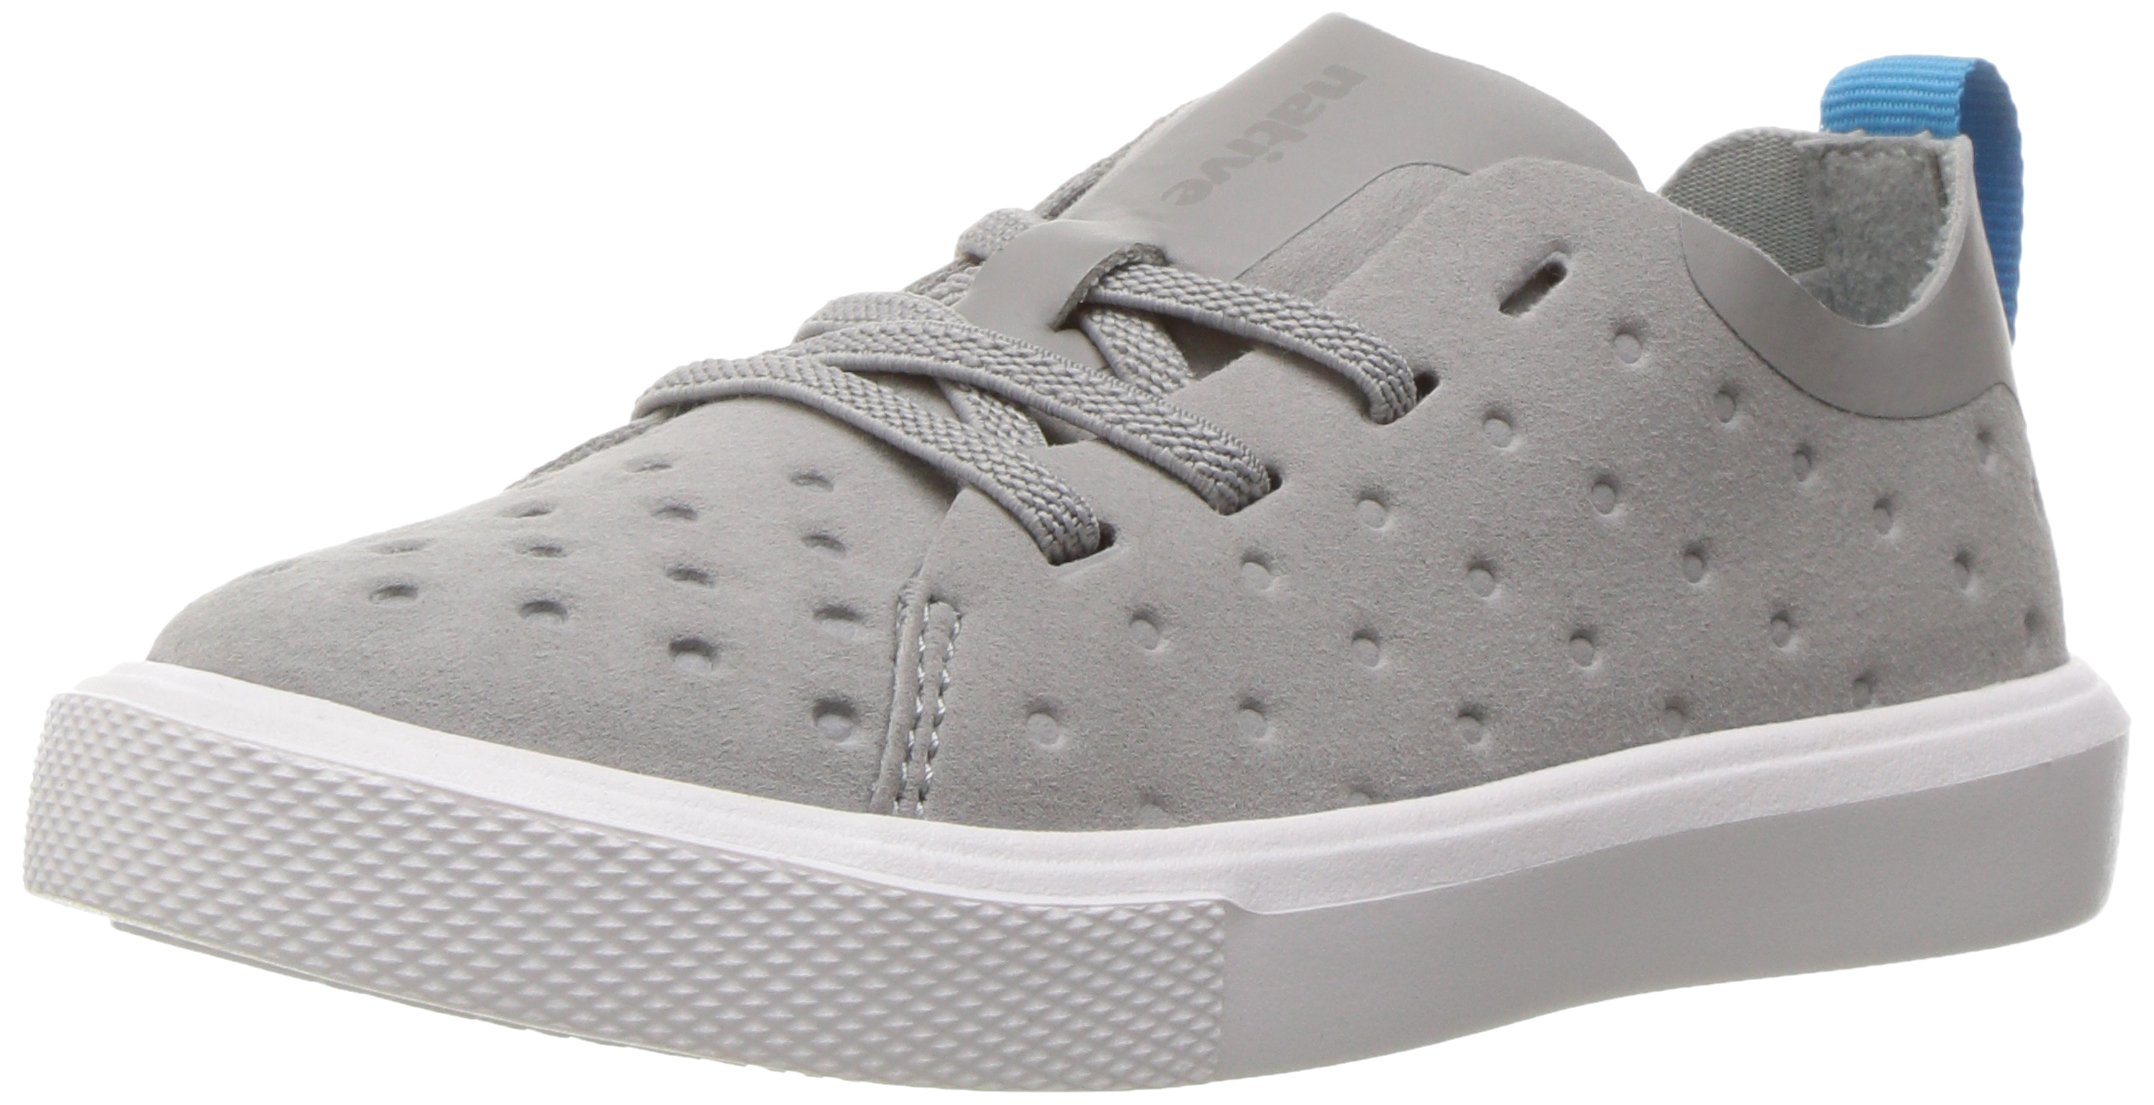 native Kids Kids' Monaco Low Slip-on, Pigeon Grey/Shell White, 8 M US Toddler